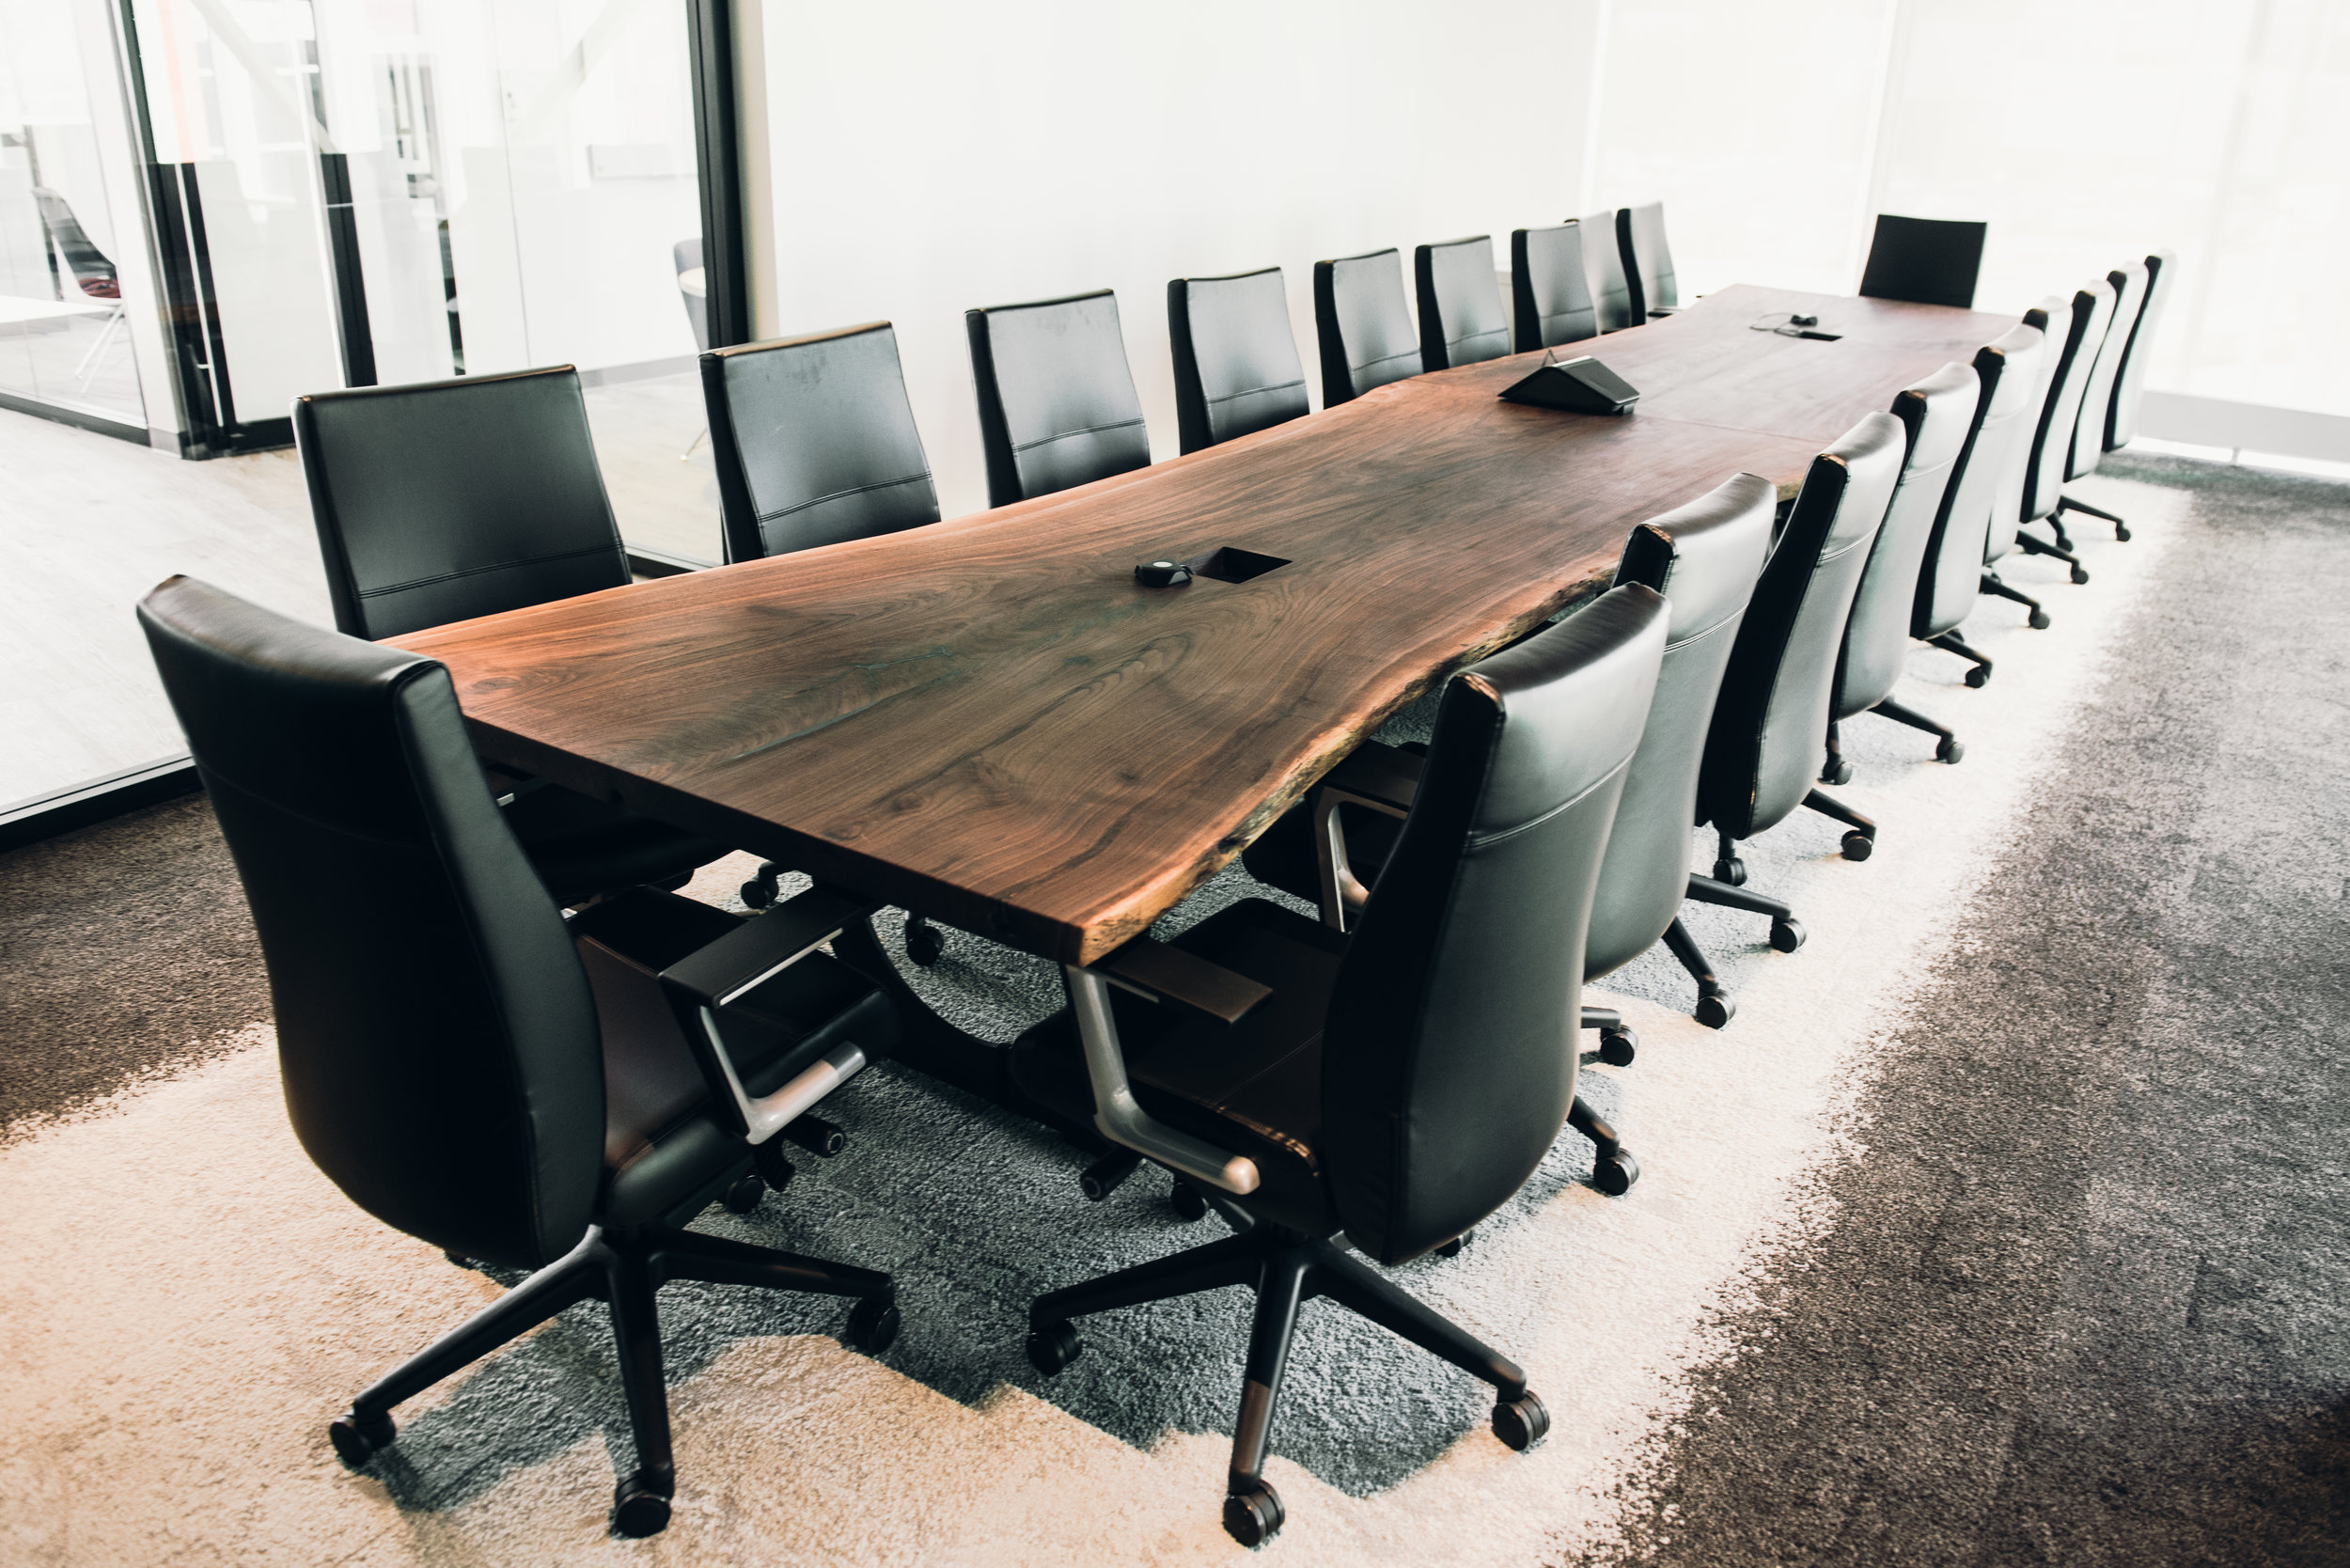 20' x 4' Live edge walnut conference table